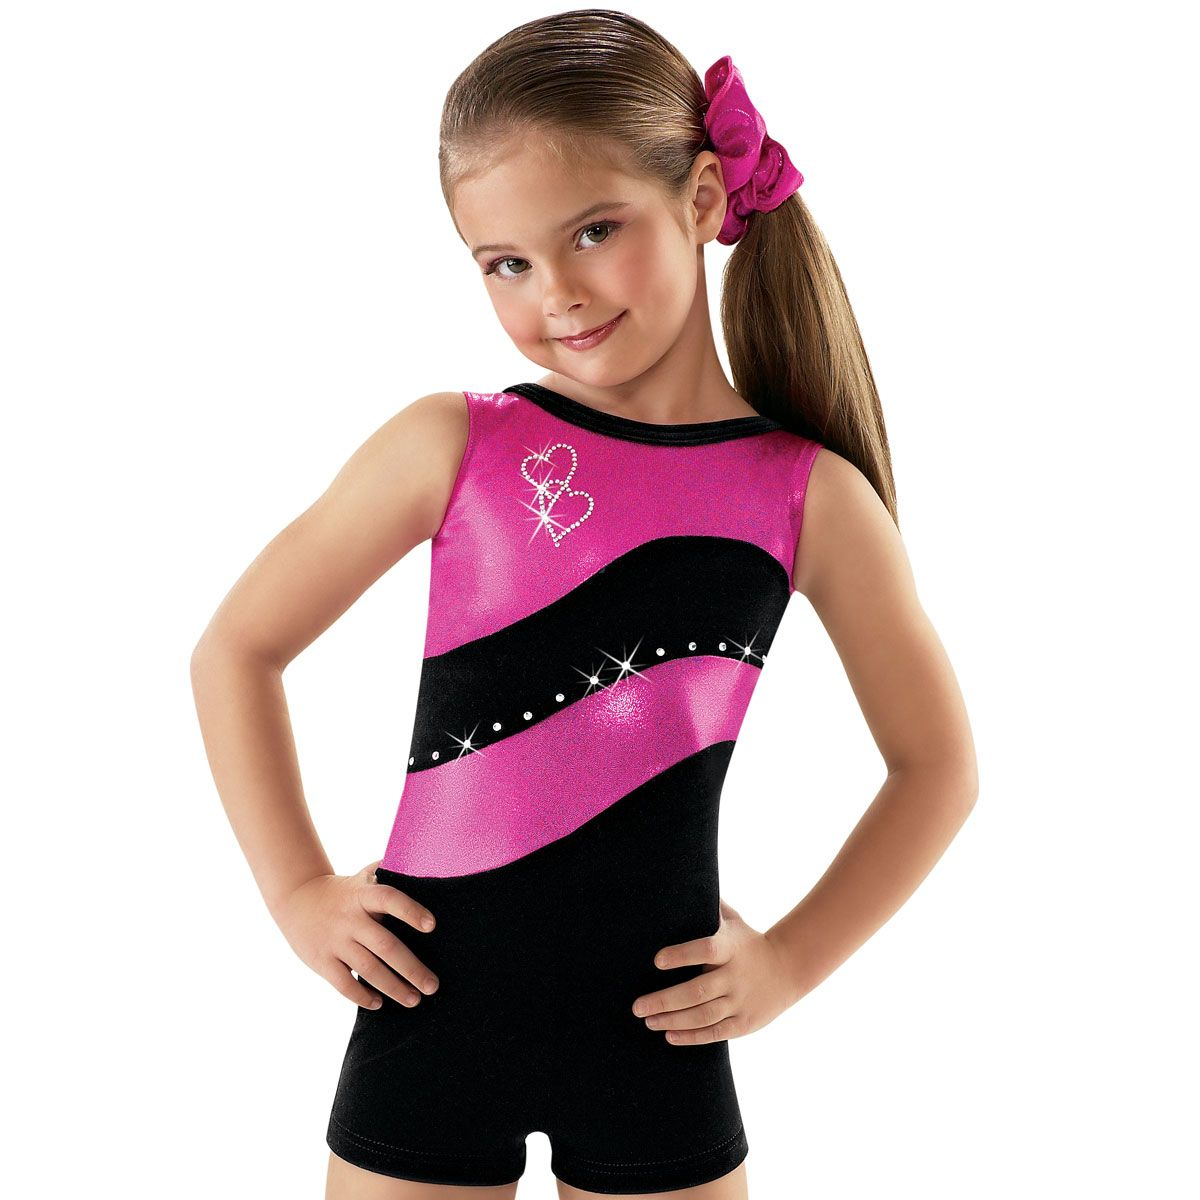 Black spandex dance unitard gymnastics and dancewear - Here Is A Nice Kids Dance And Gymnastics Biketard